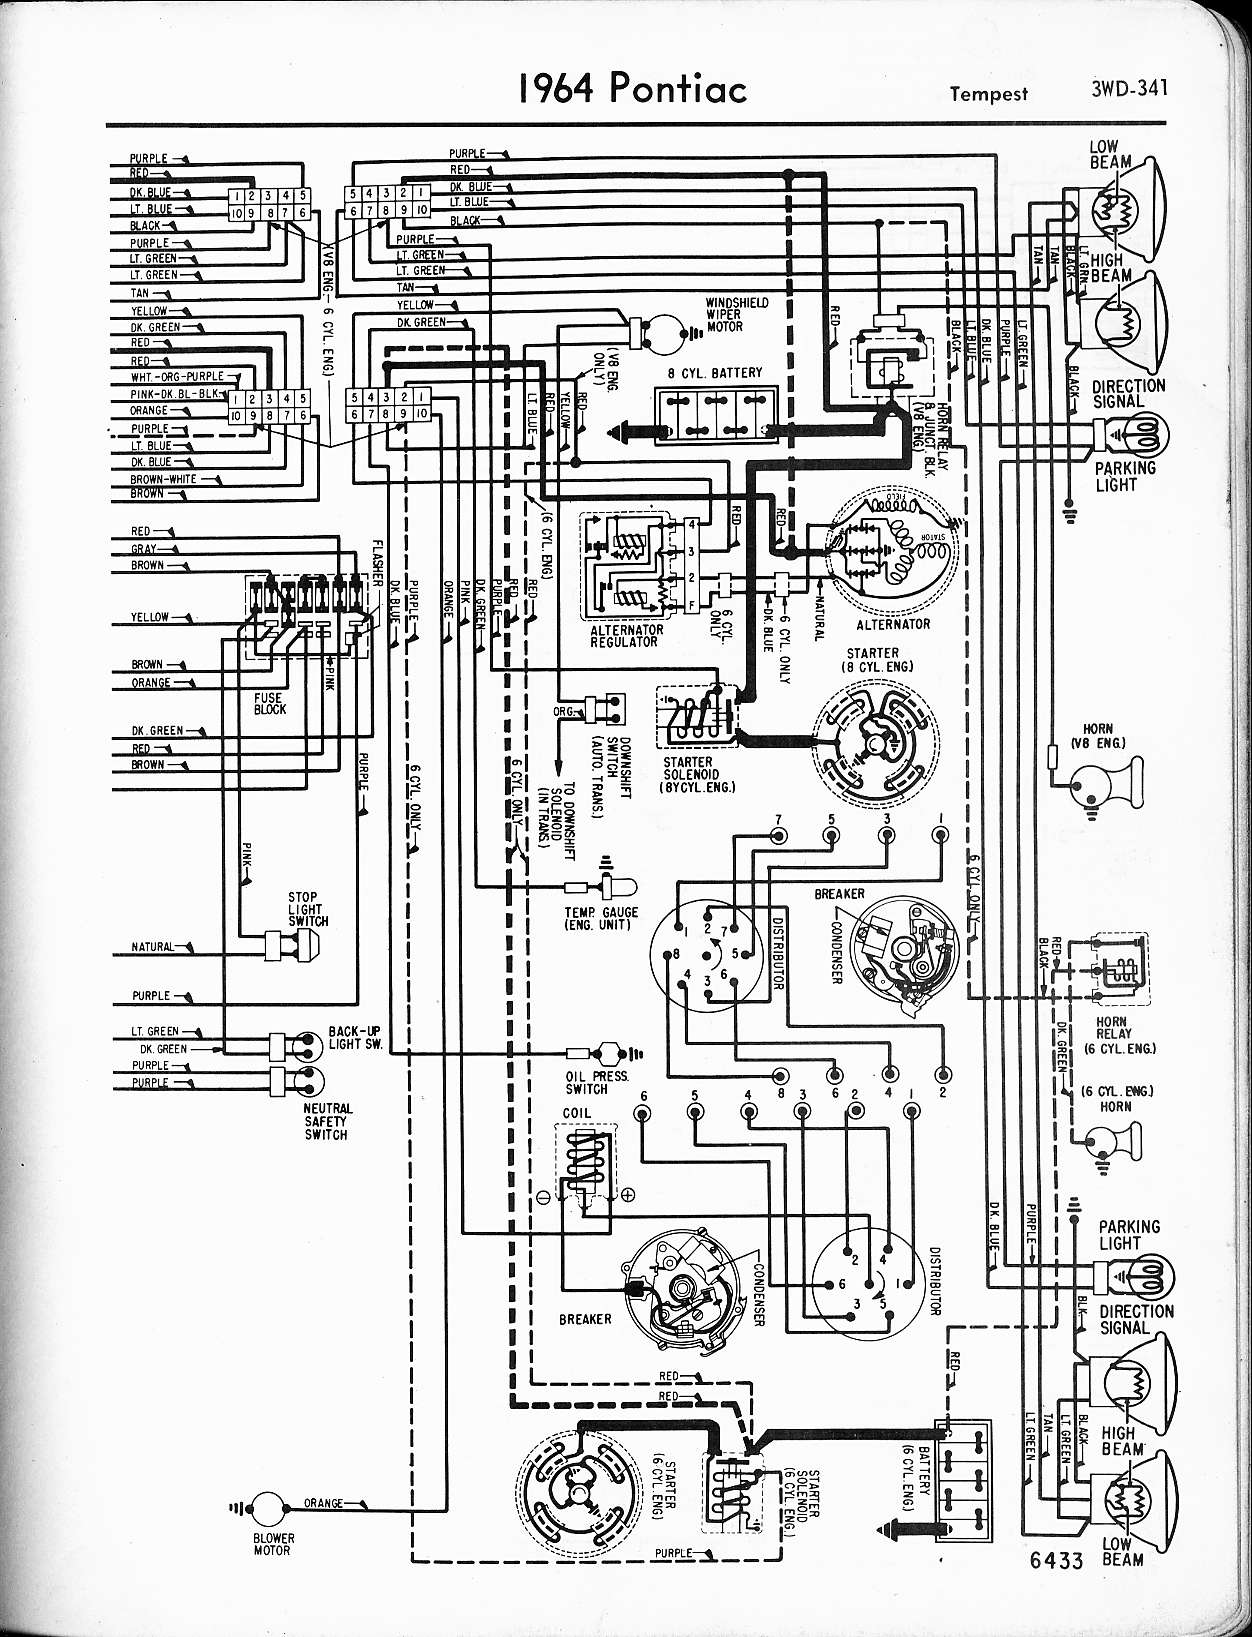 wallace racing wiring diagrams rh wallaceracing com 1964 pontiac parisienne wiring diagram 1964 pontiac parisienne wiring diagram